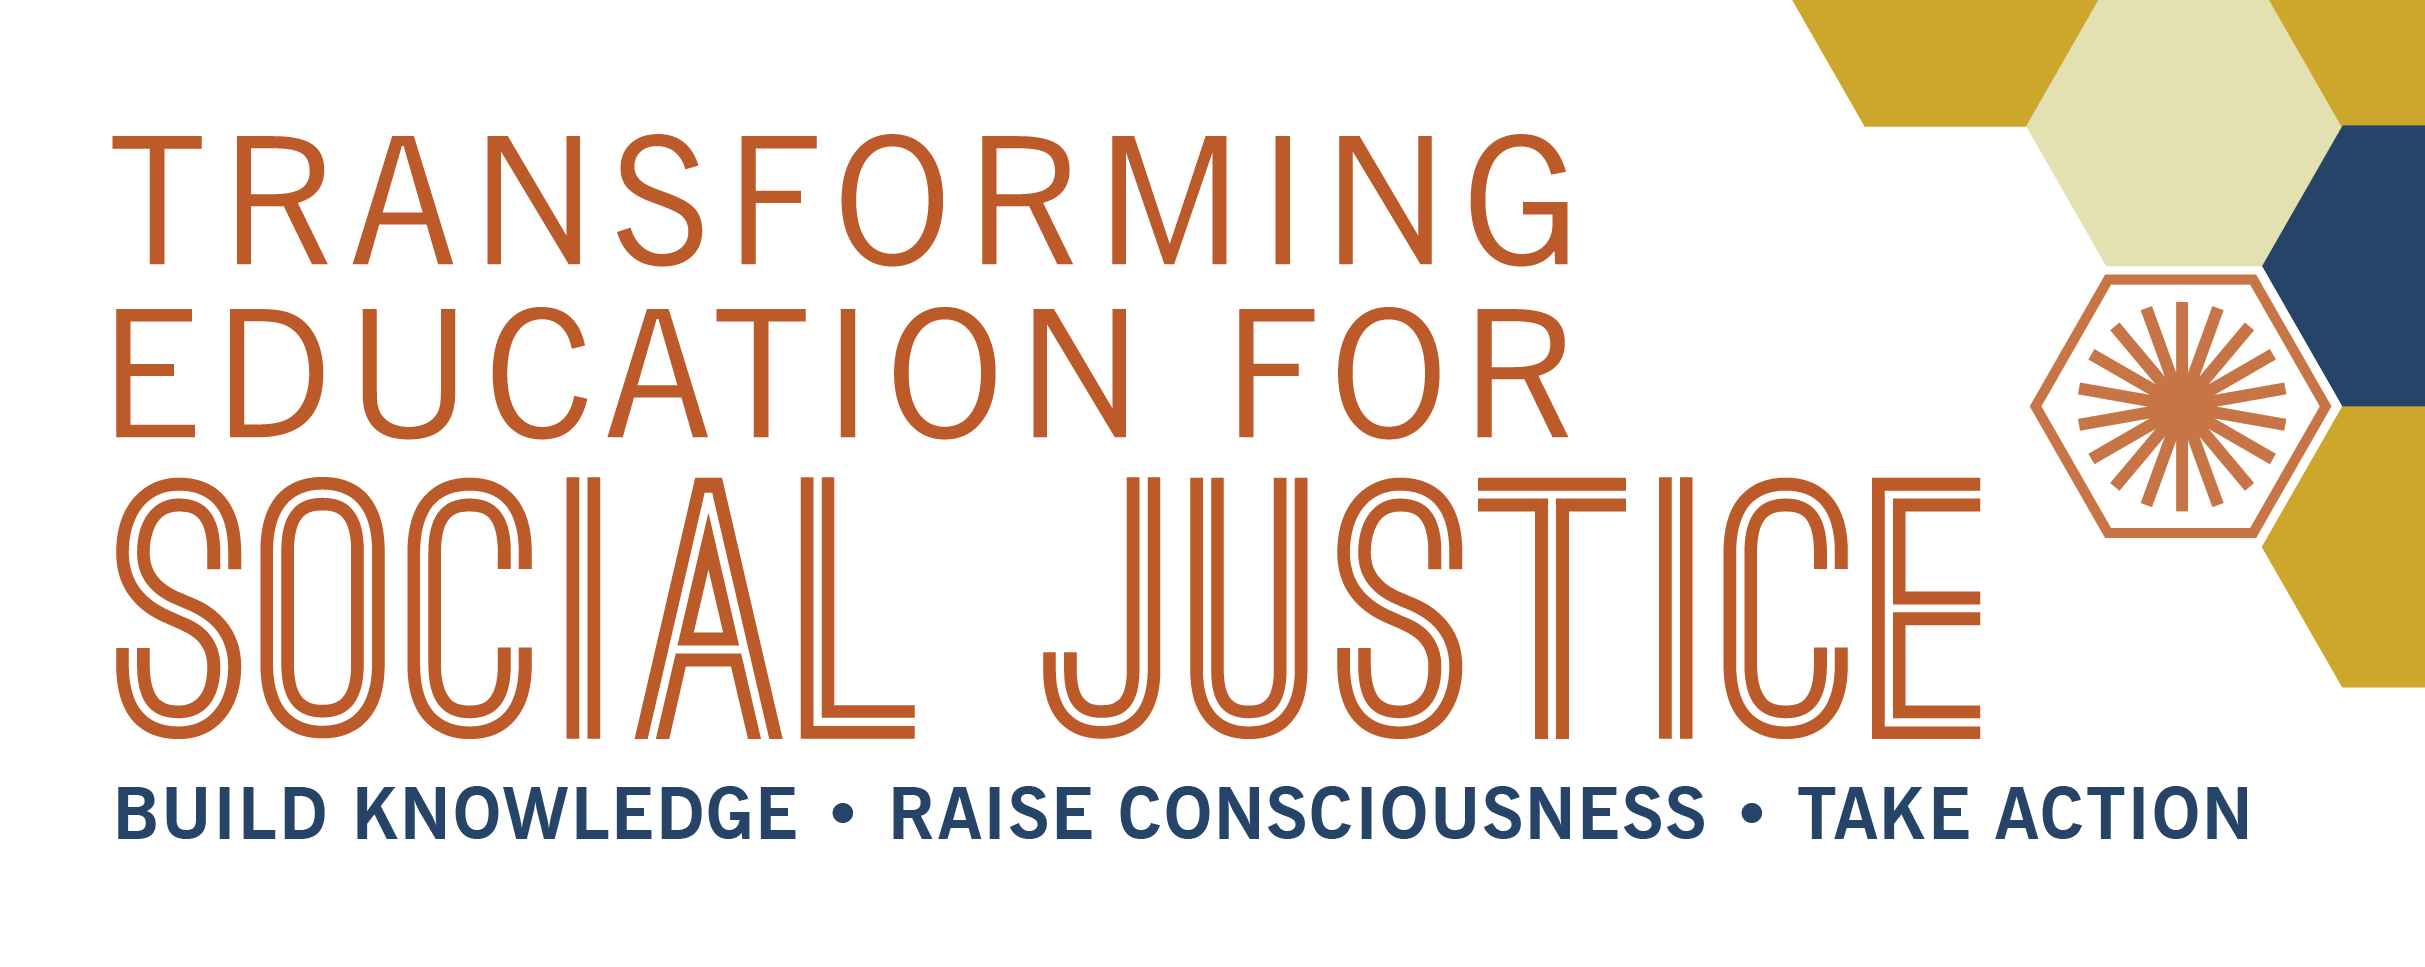 graphic block with text: transforming education for social justice; build knowledge. raise consciousness. take action.